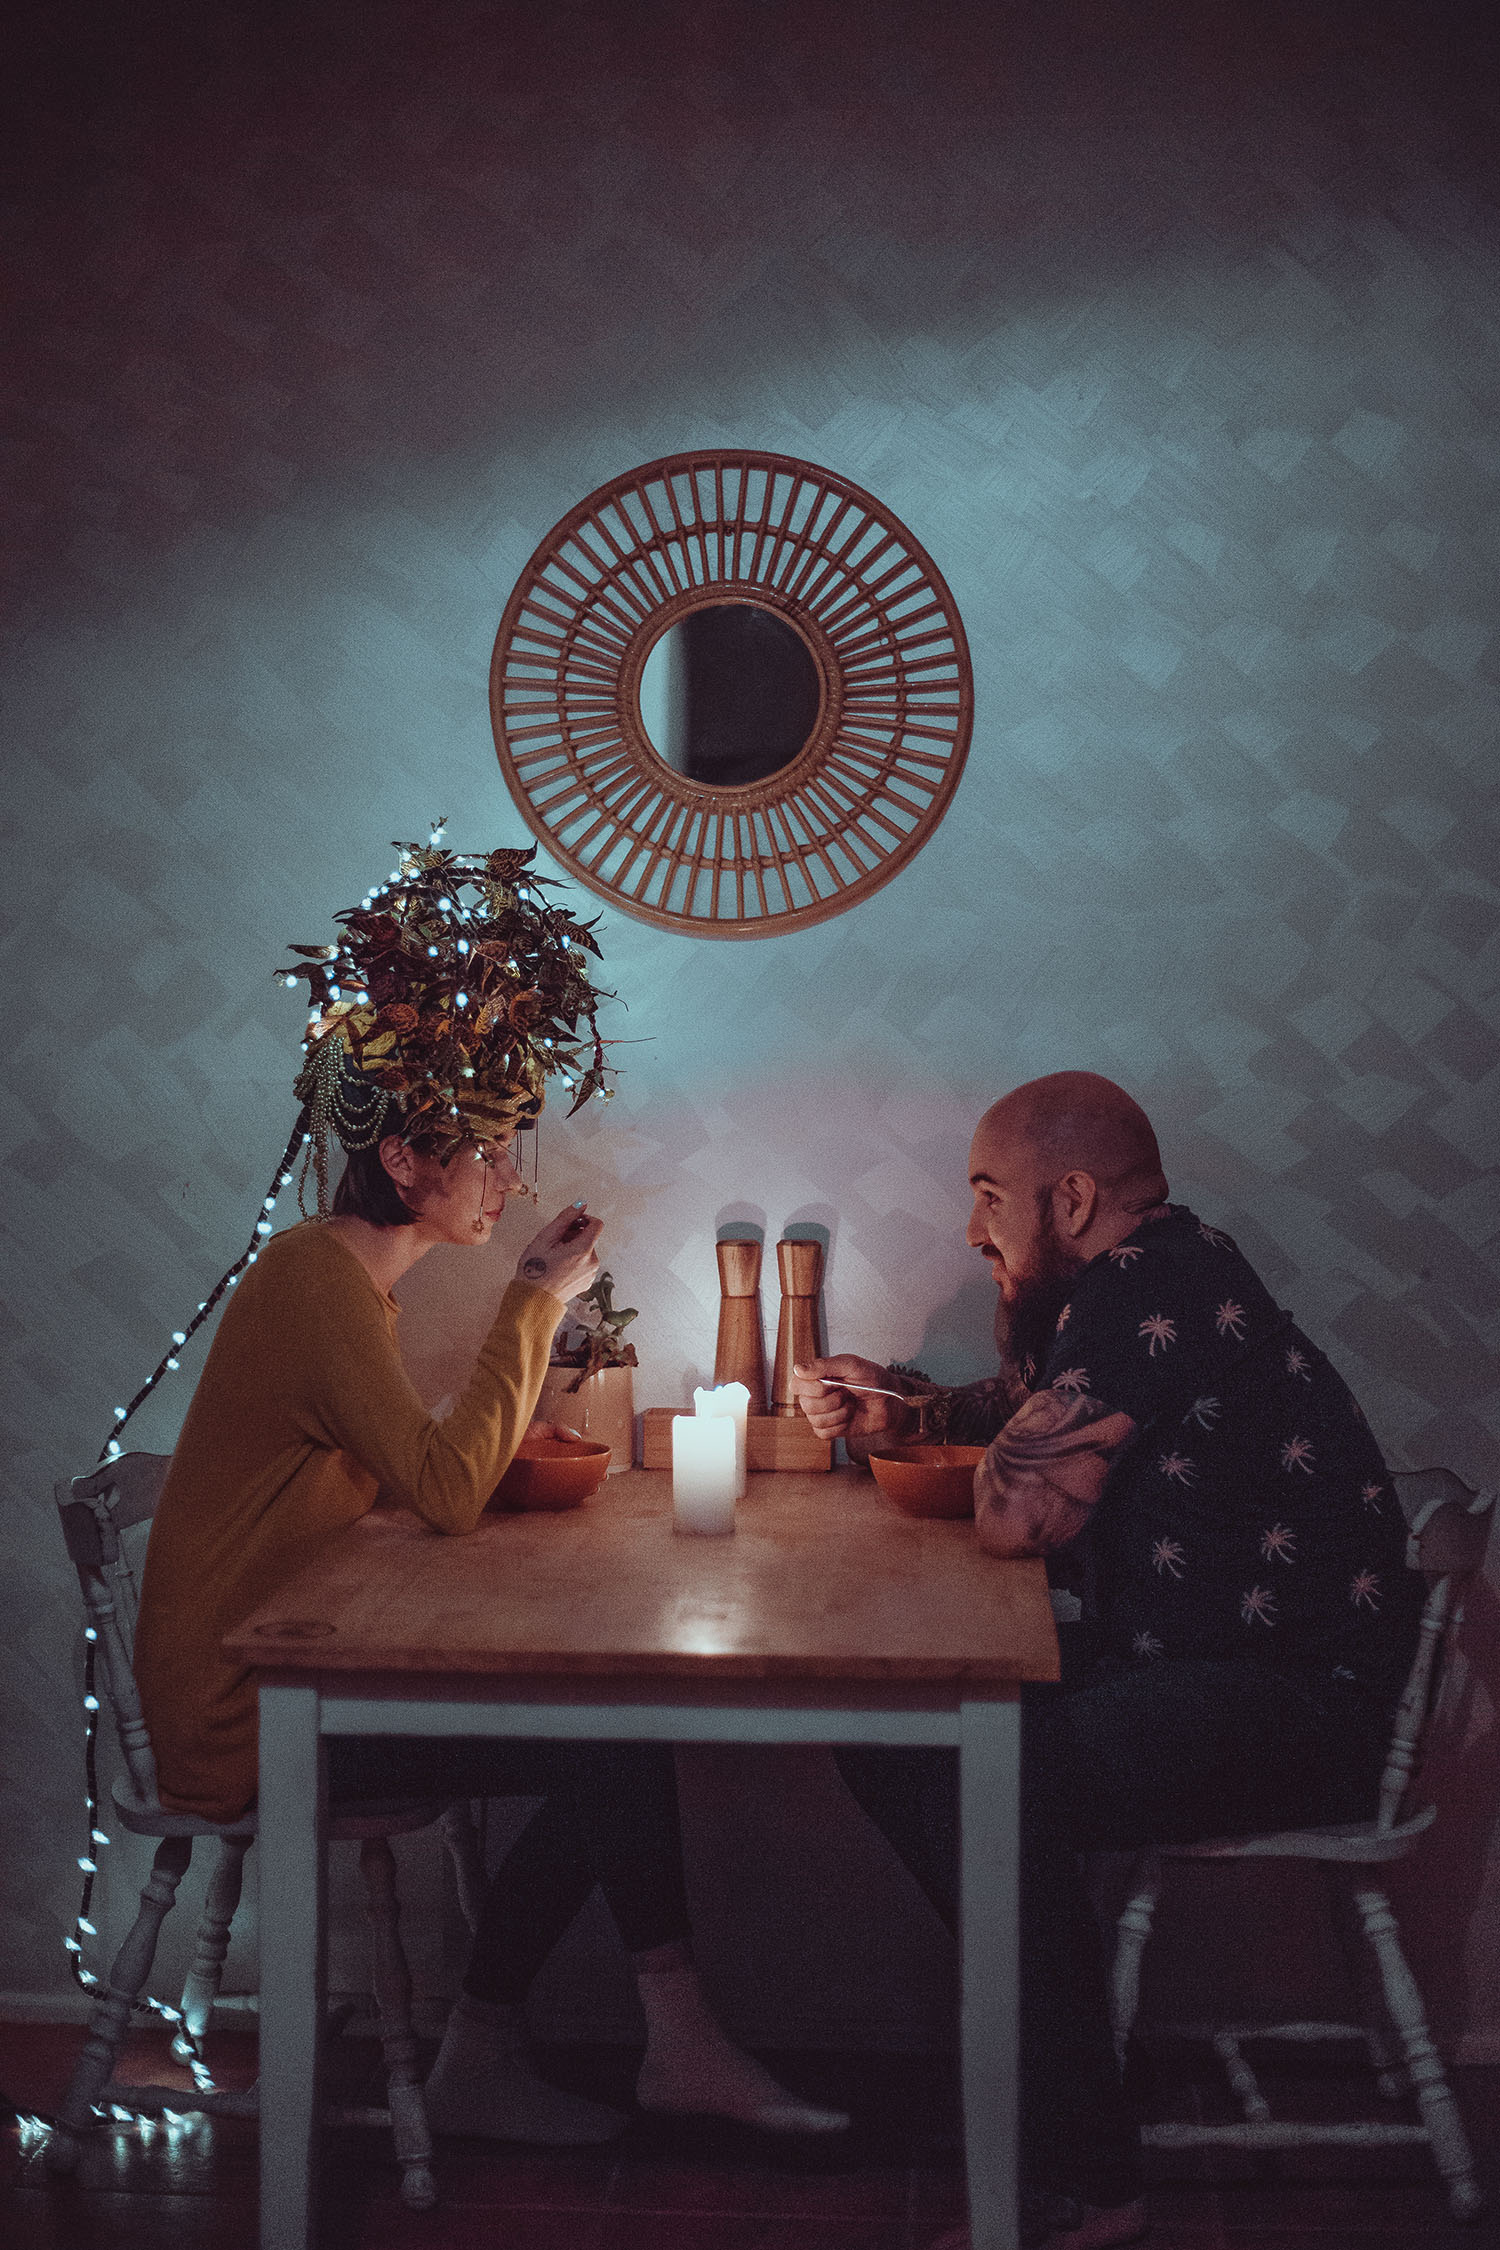 a woman and man sitting across from each other at a kitchen table